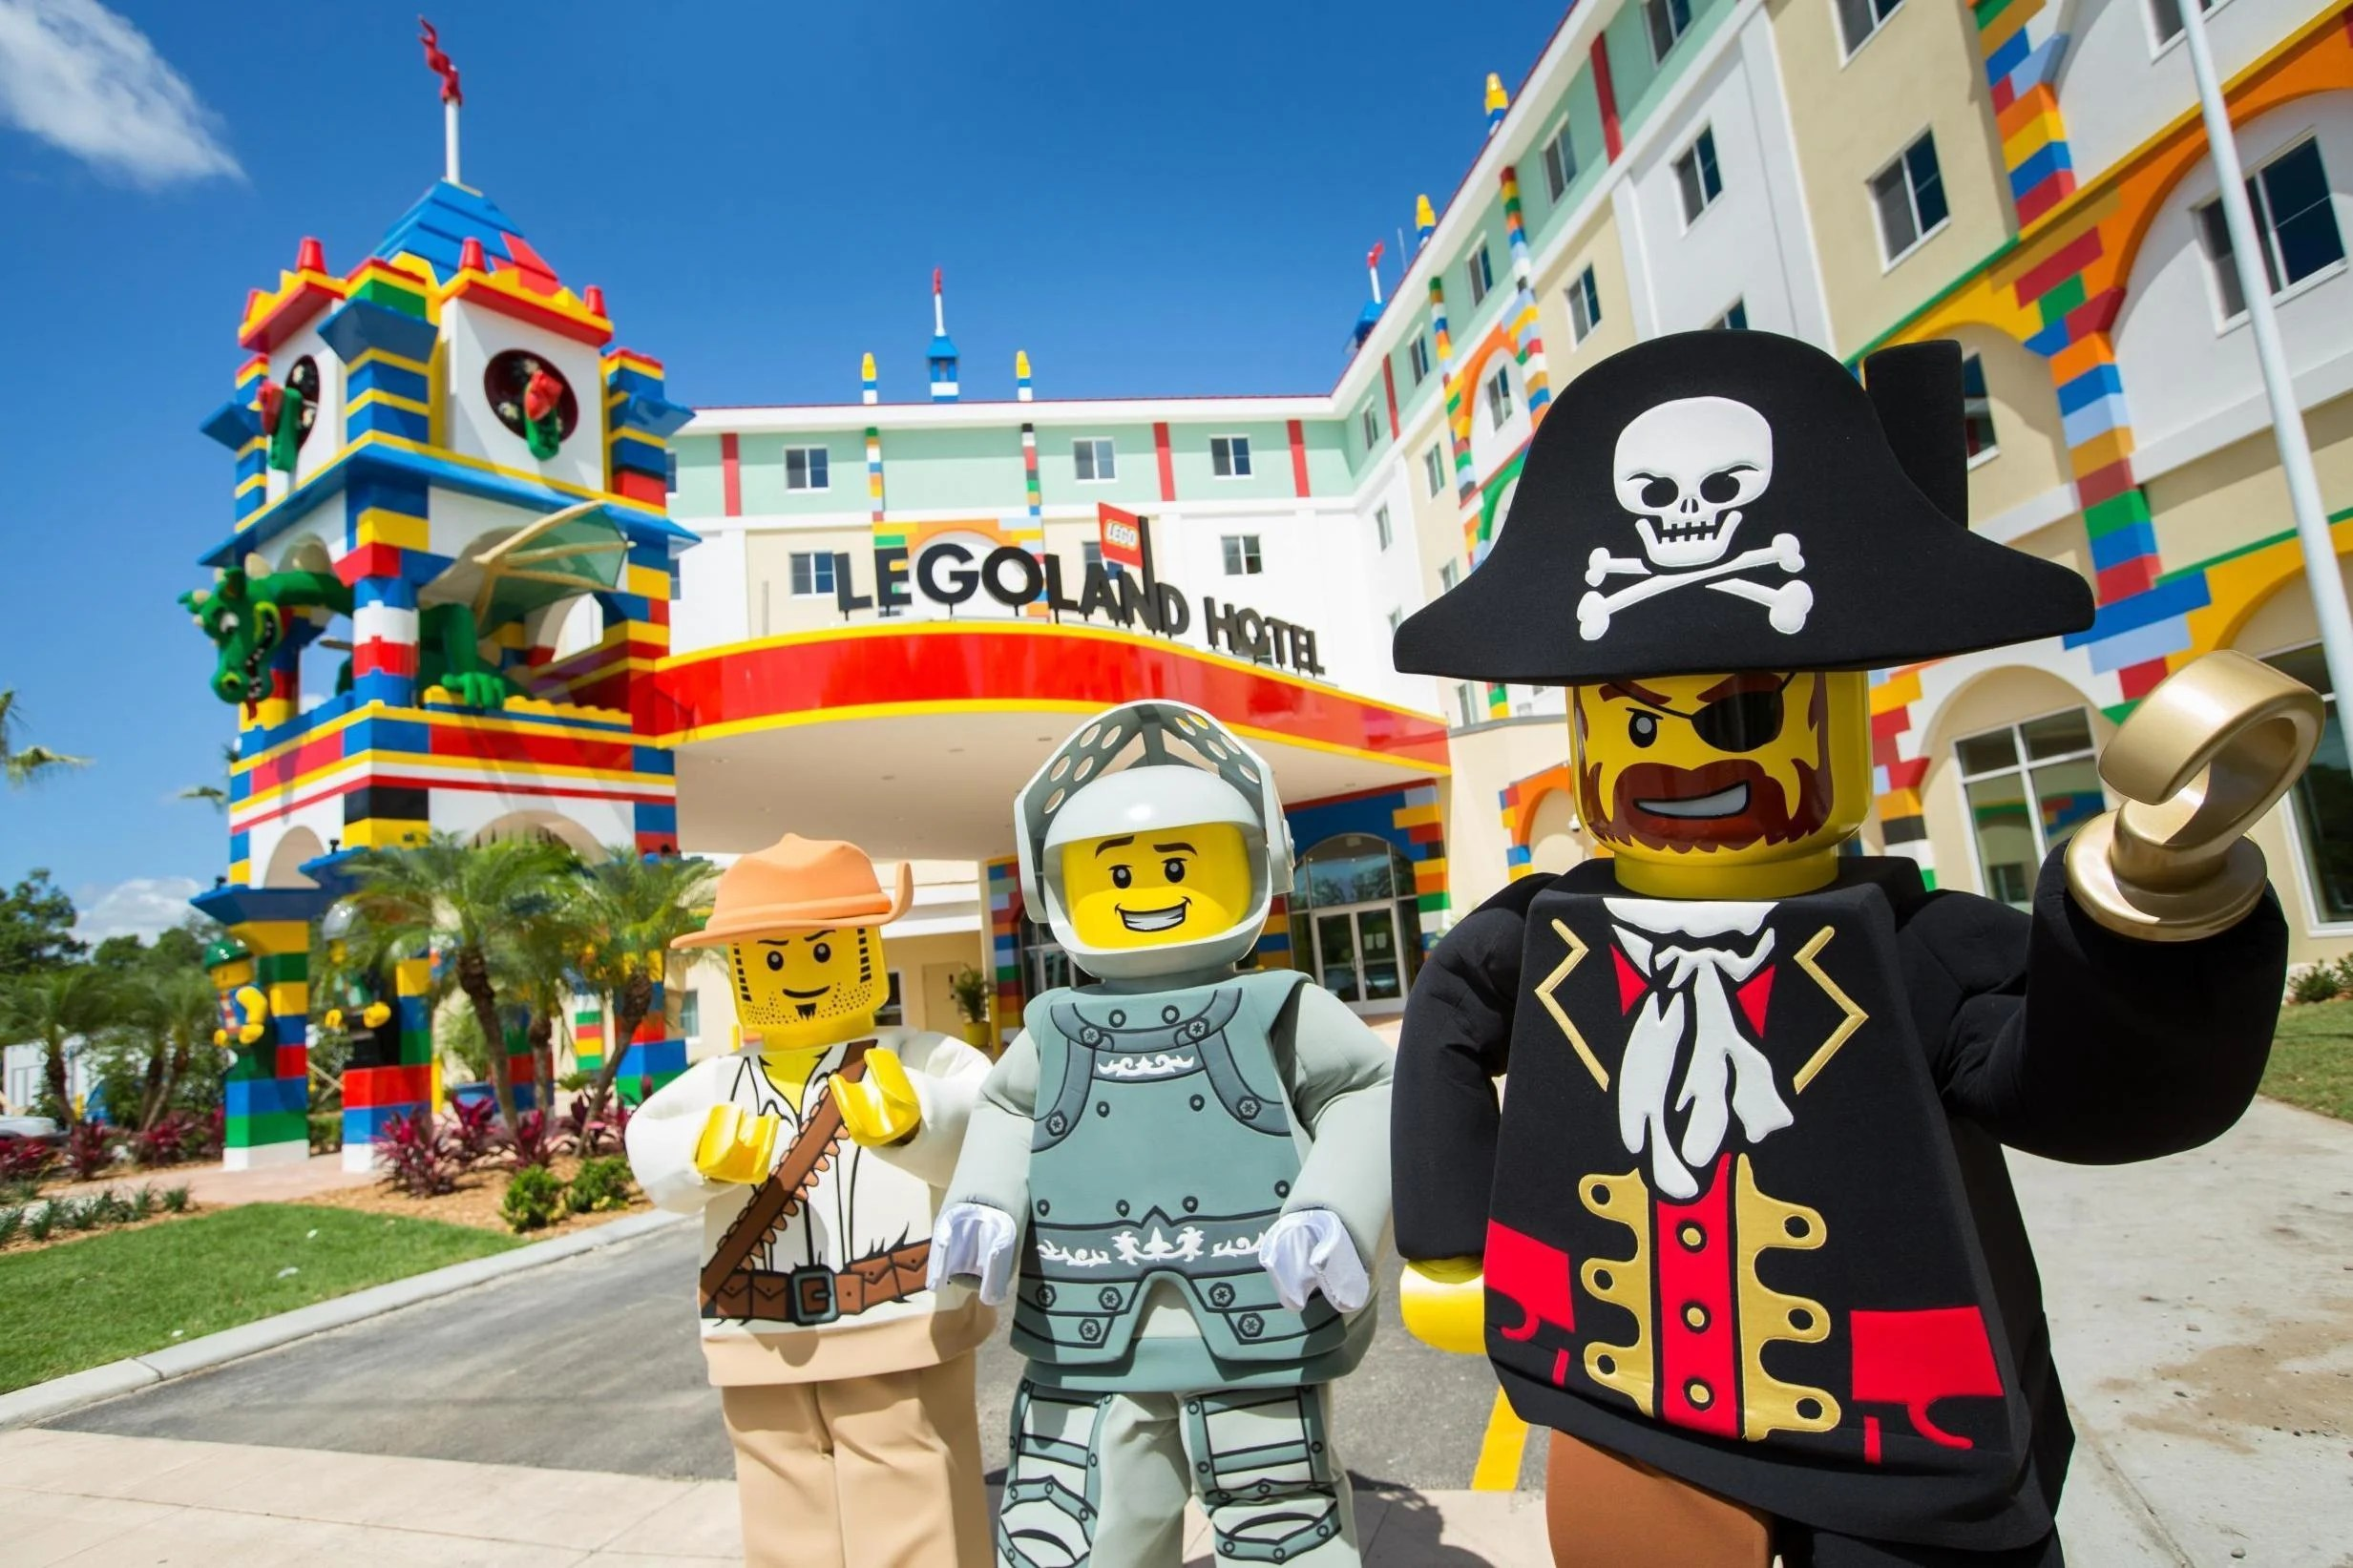 Why LEGOLAND Florida Resort offers fun for all the family   The     LEGO  the LEGO logo  the minifigure and LEGOLAND are trademarks of The LEGO  Group